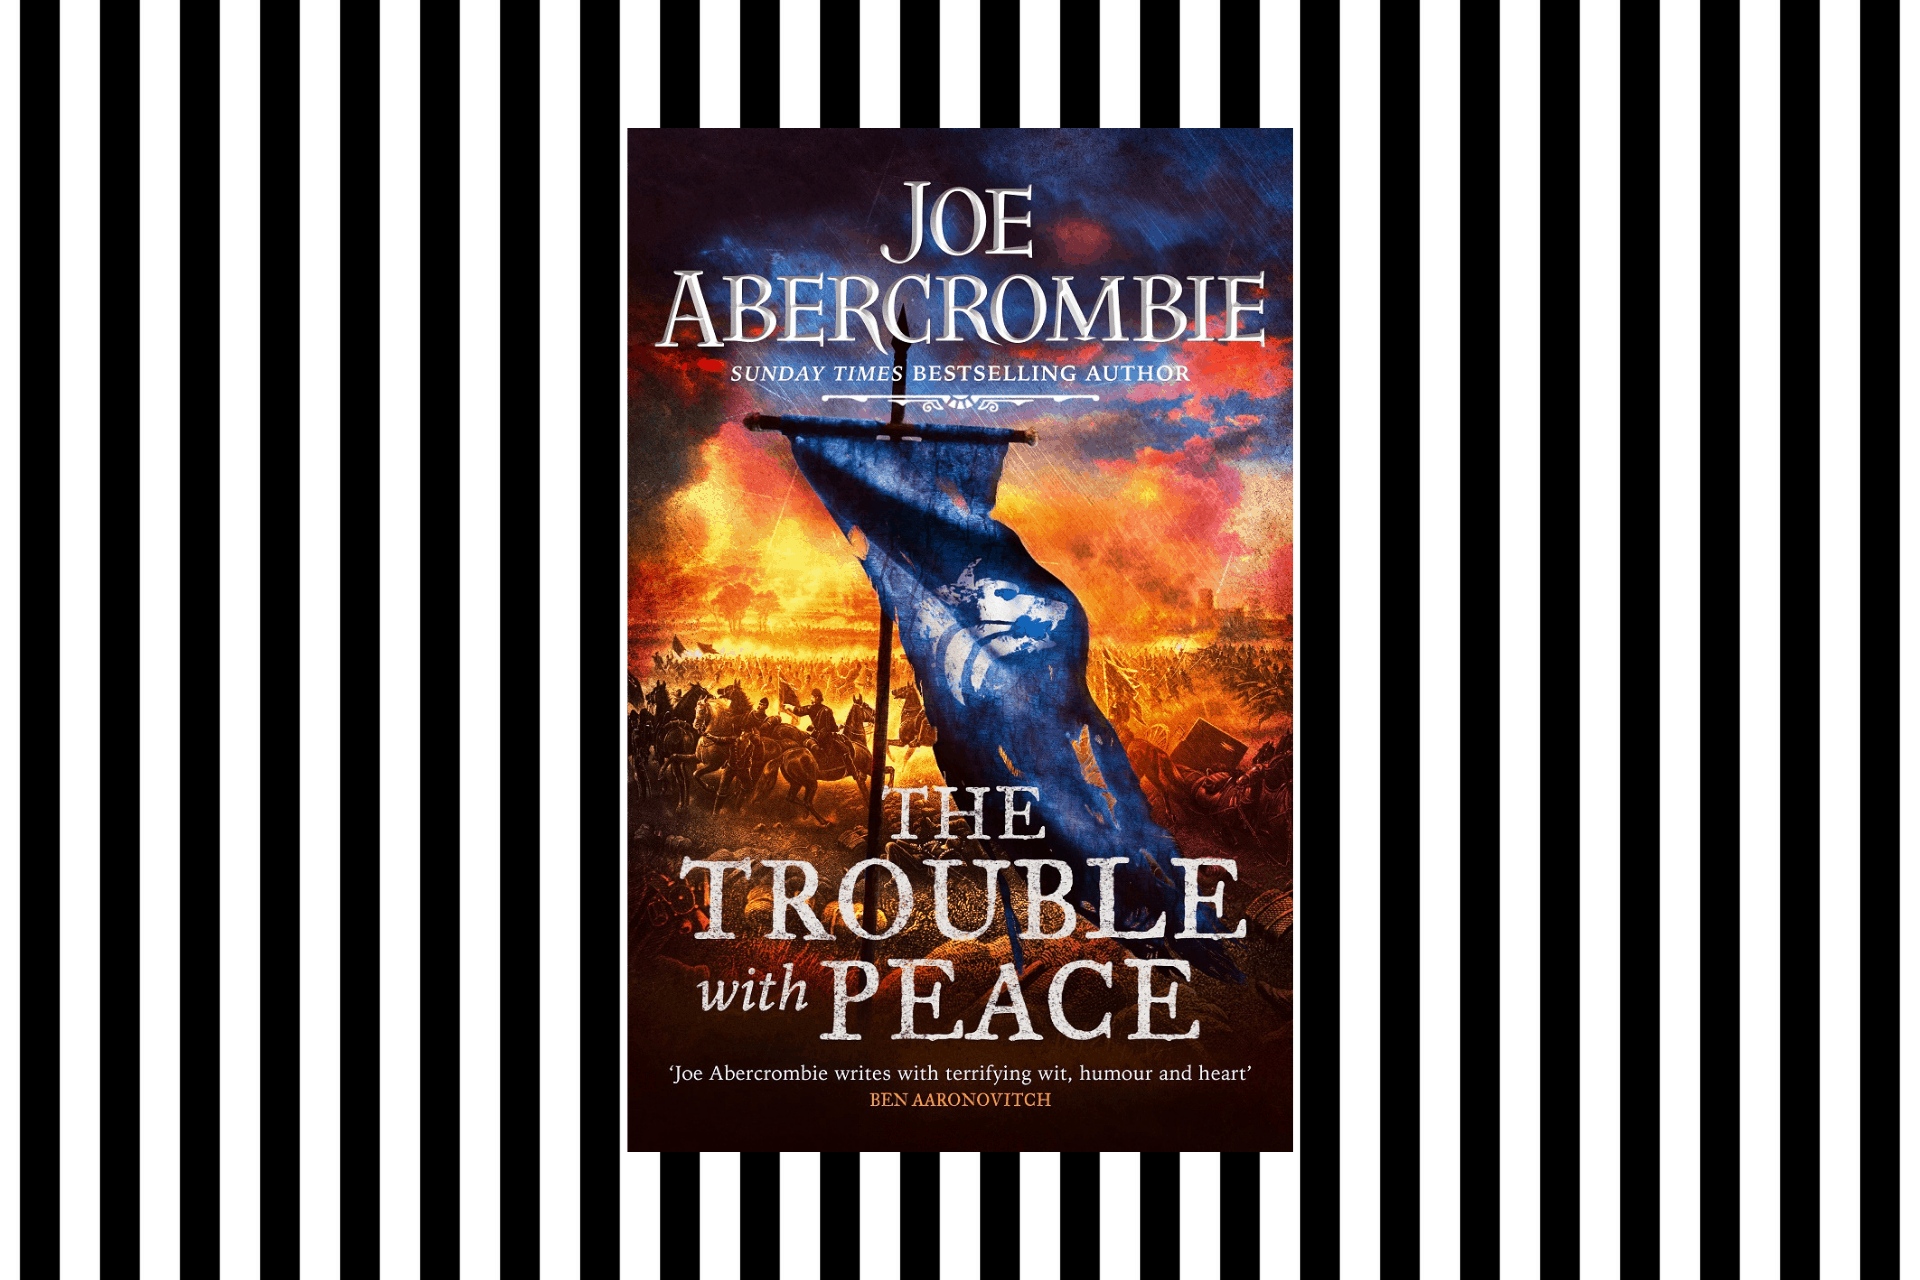 The cover of The Trouble with Peace by Joe Abercrombie